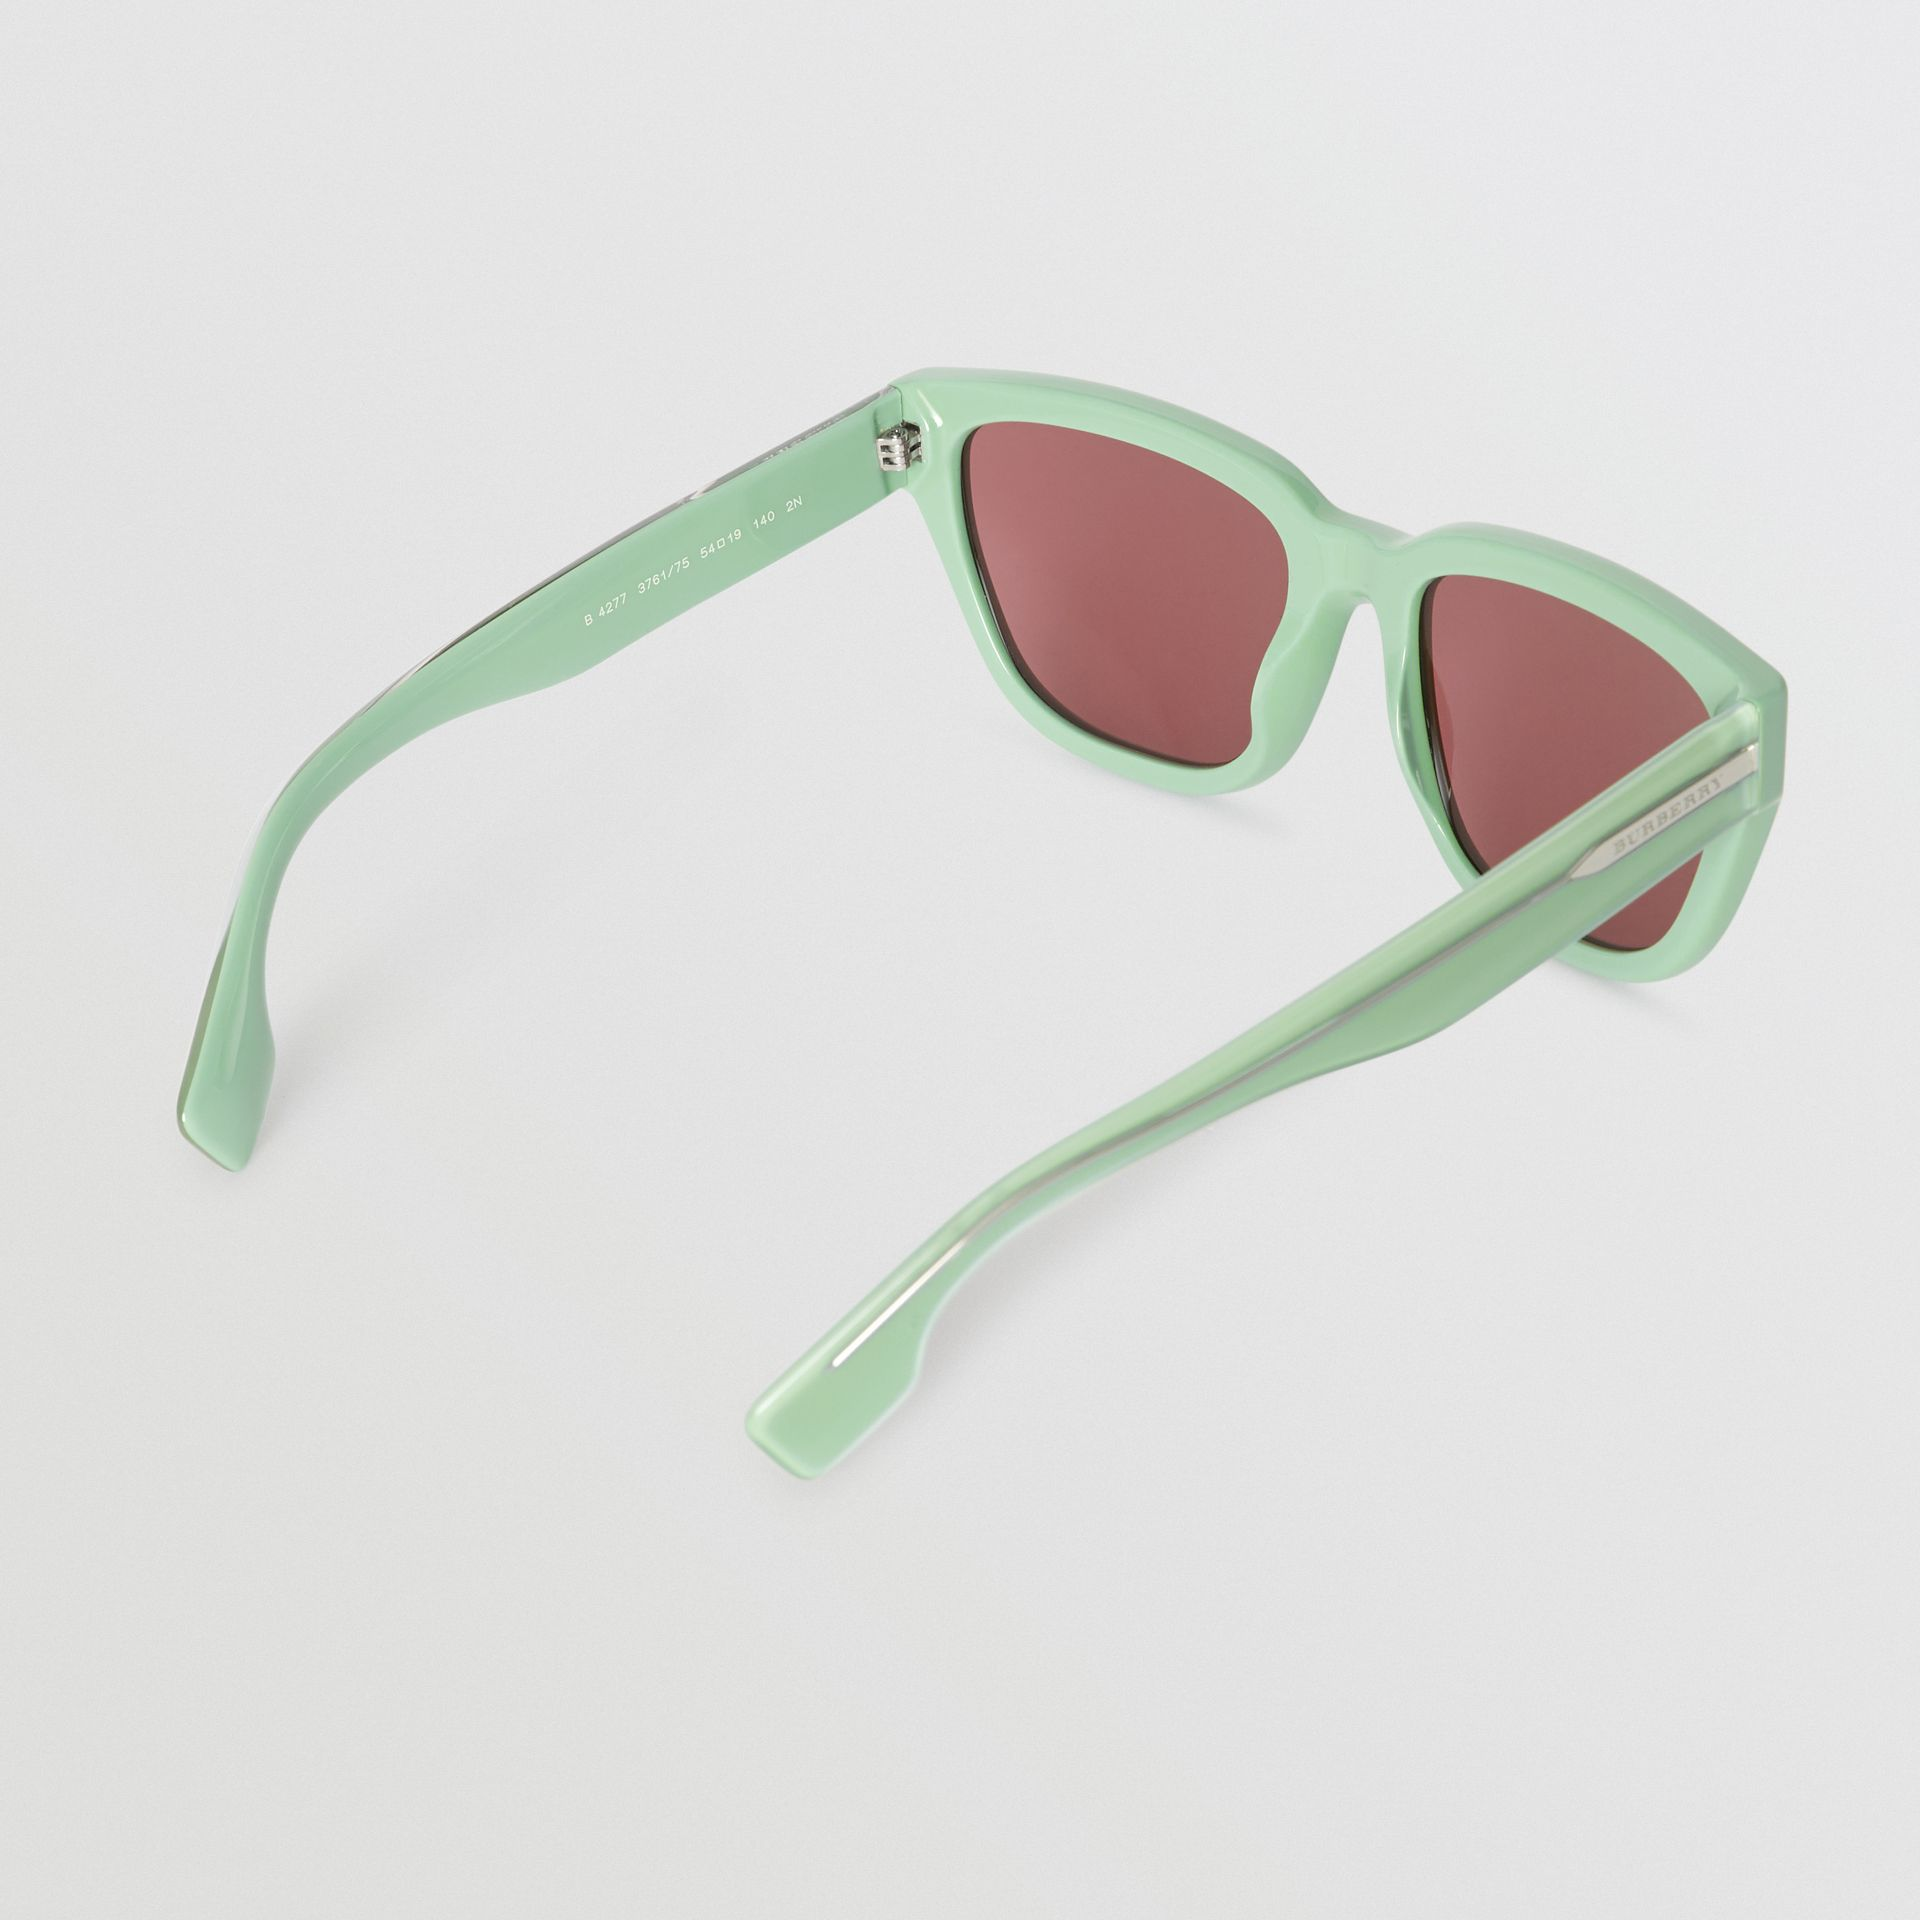 Square Frame Sunglasses in Mint Green - Women | Burberry Hong Kong - gallery image 4